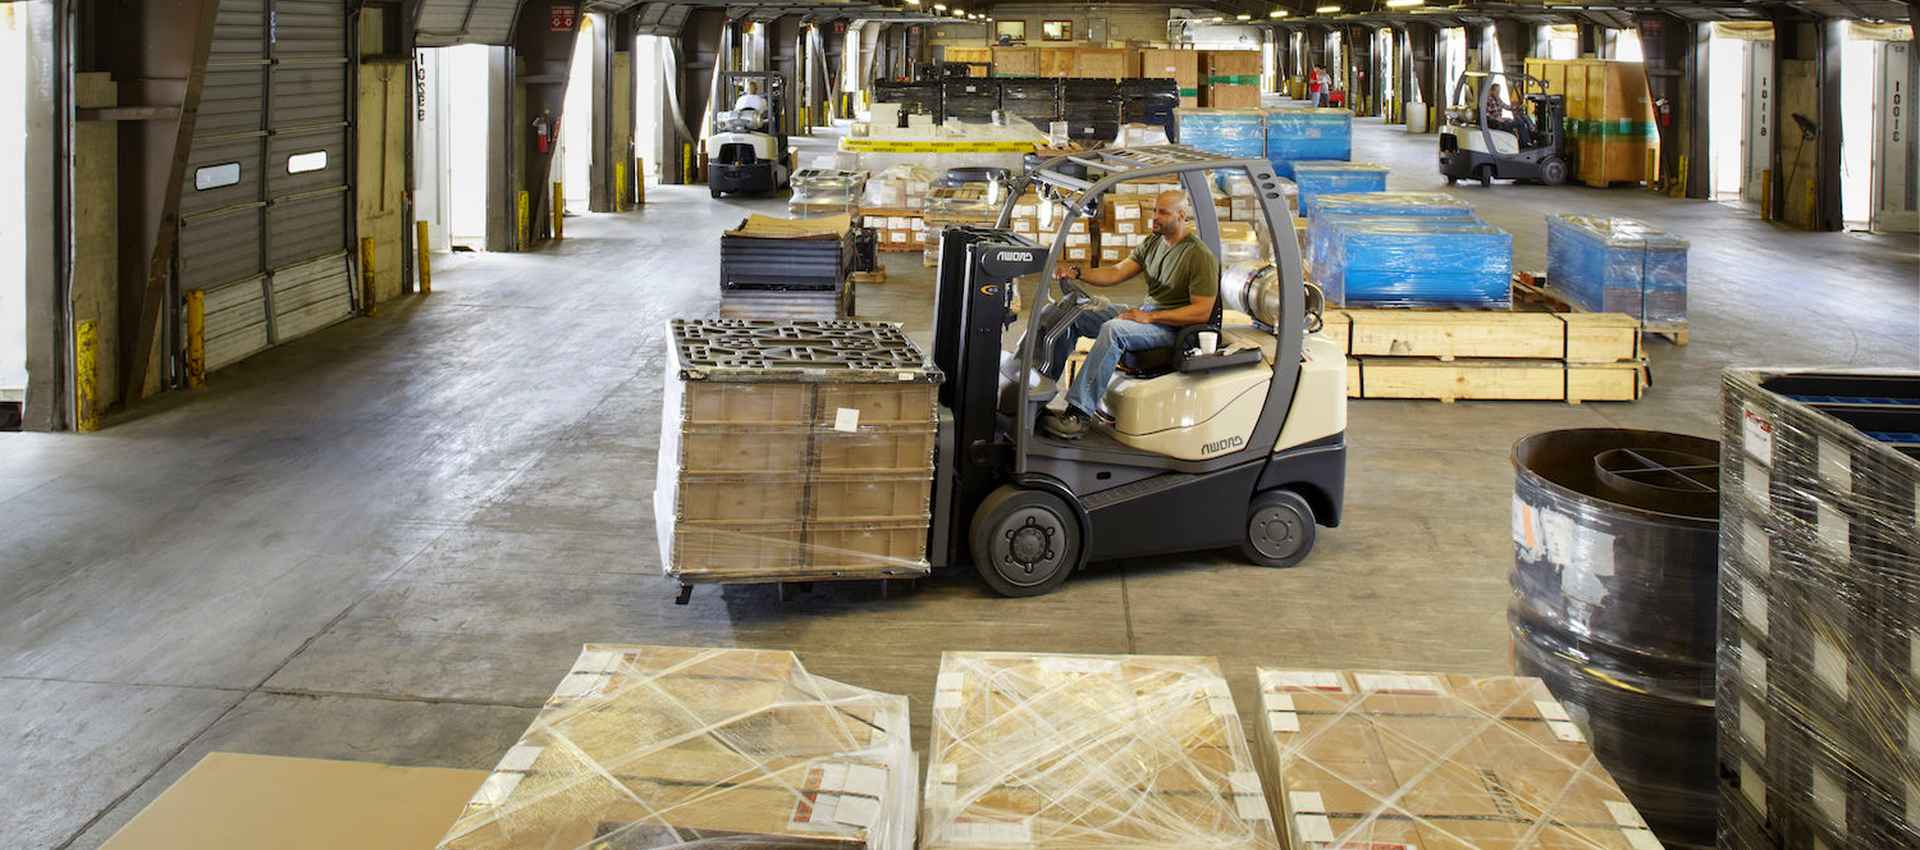 Cross-Docking Services: Pros & Cons